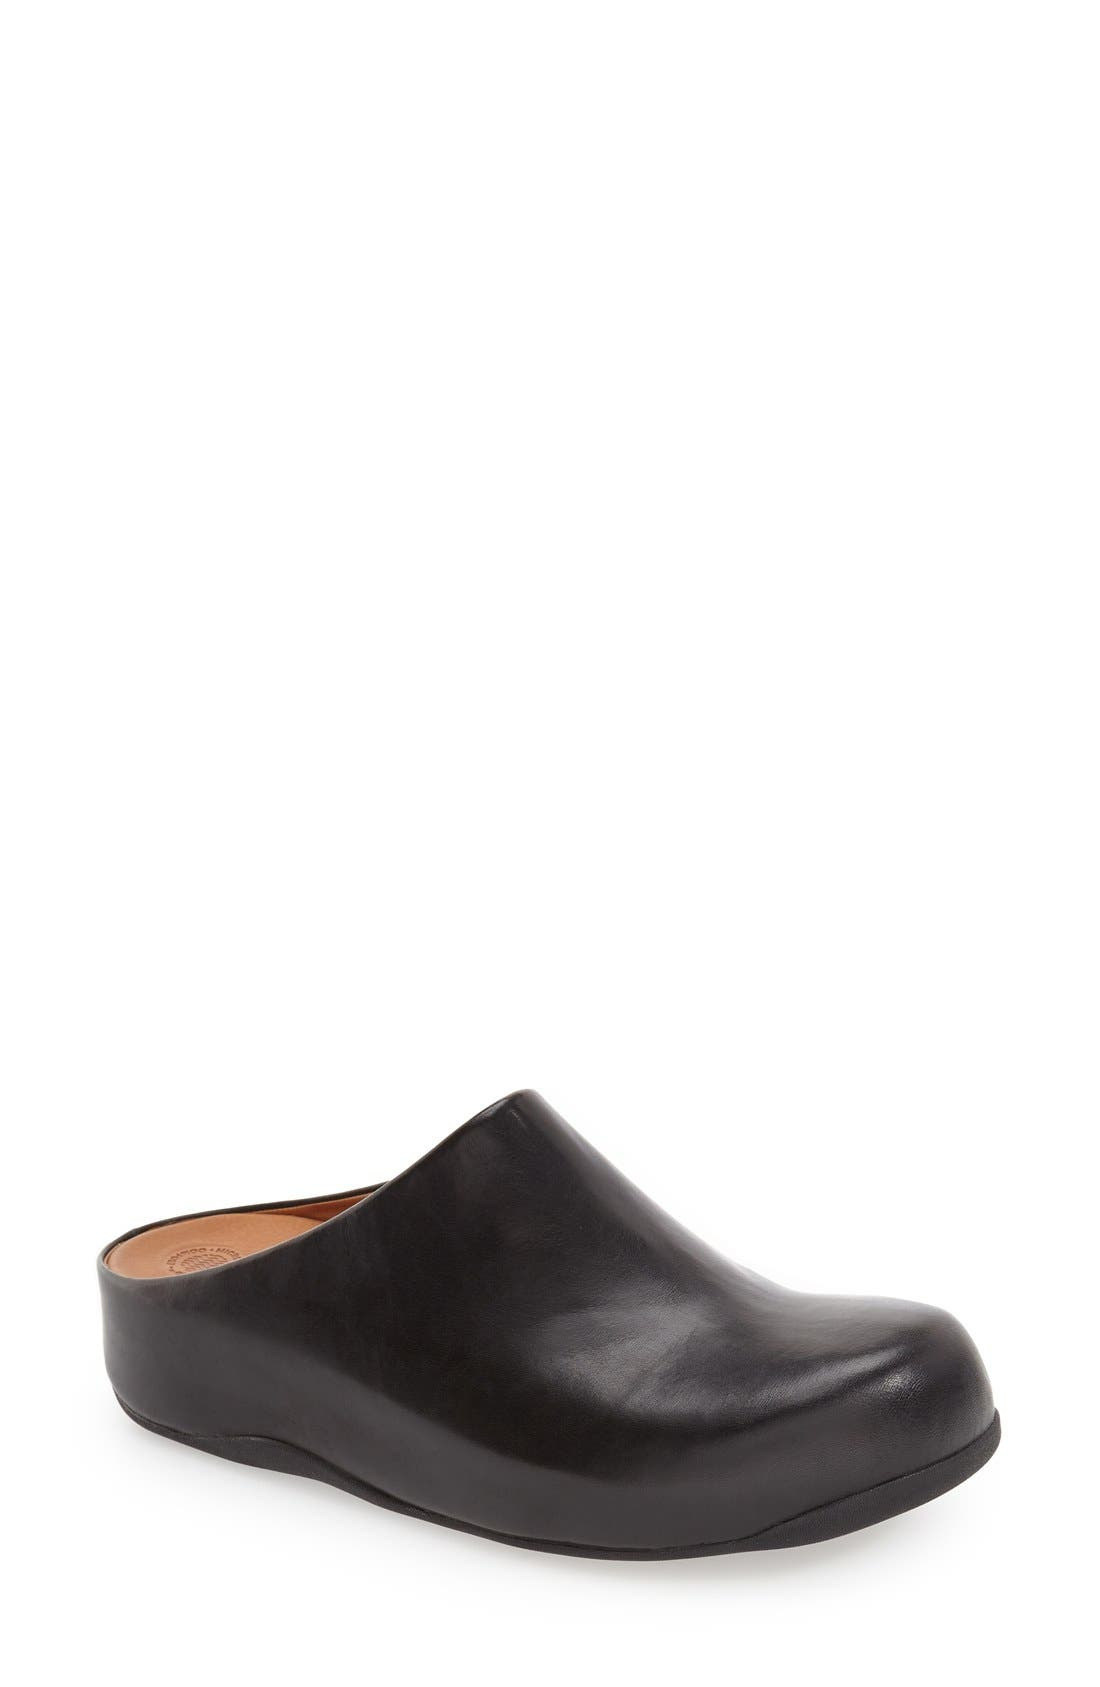 Main Image - FitFlop 'Shuv™' Leather Clog